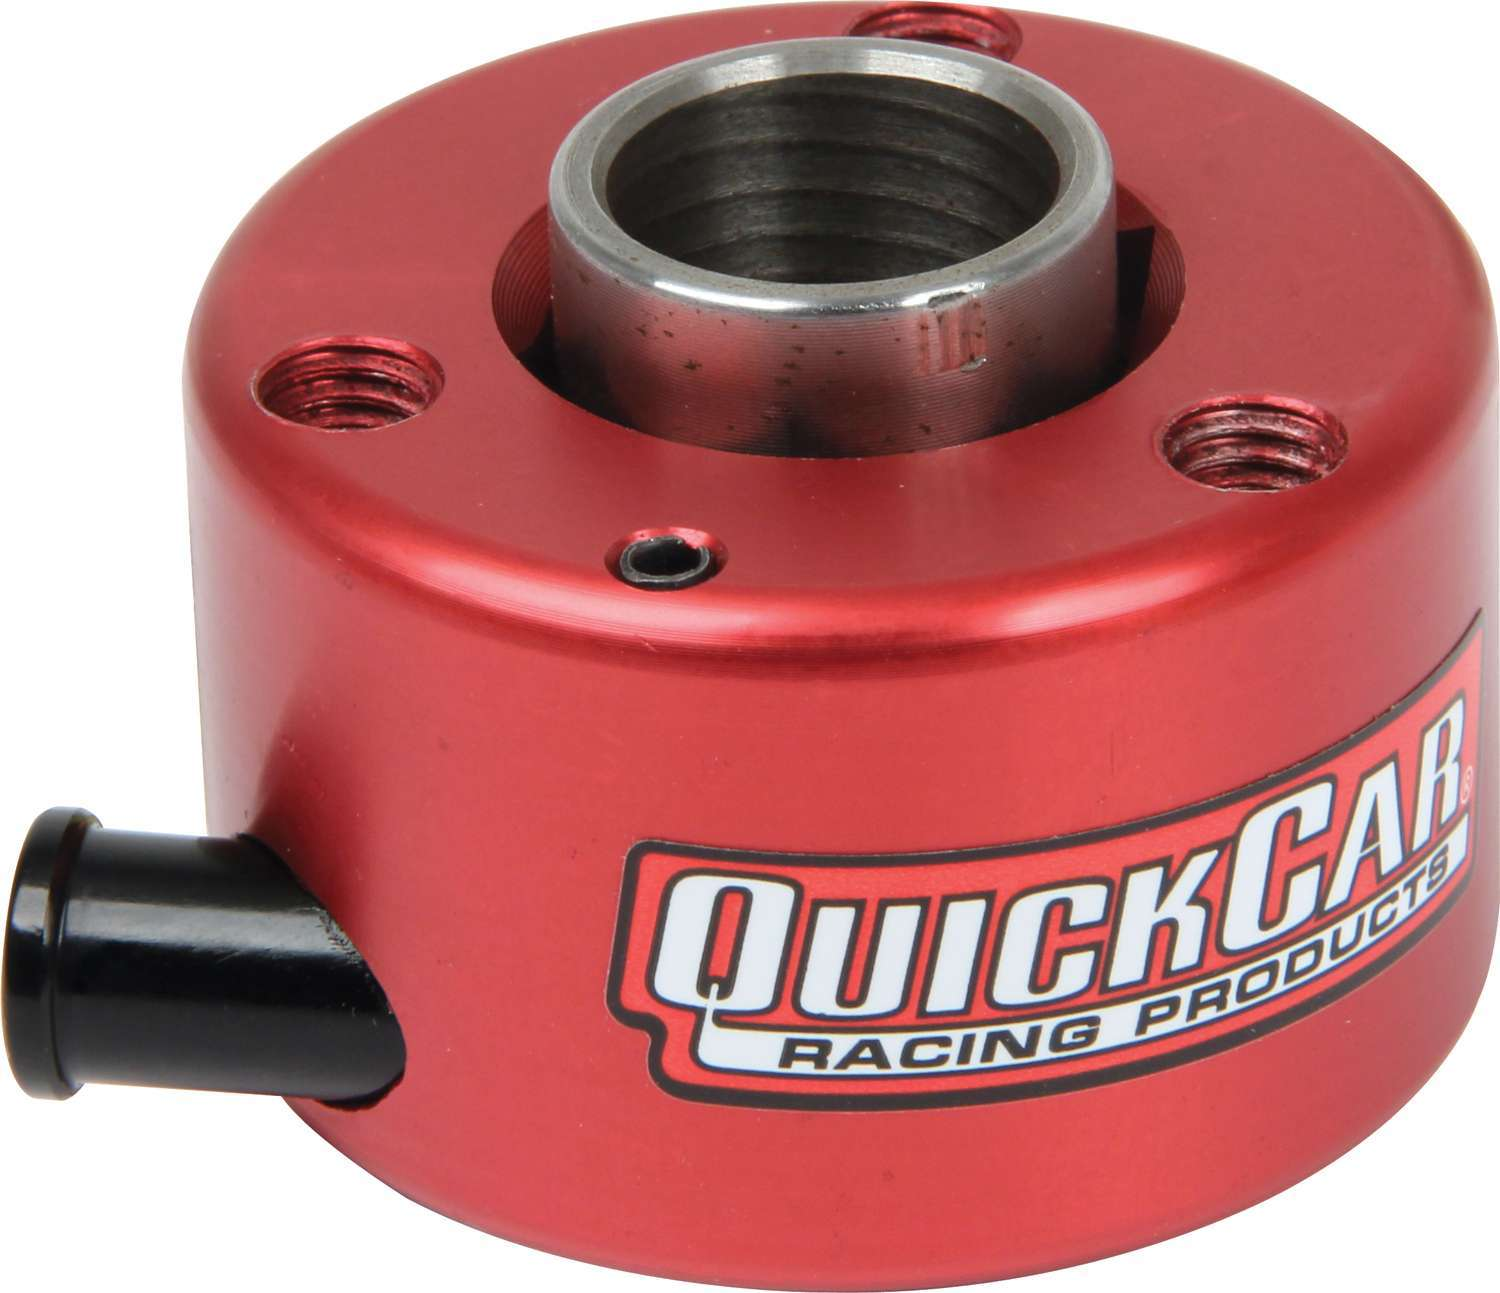 68-010 Quickcar Racing Products Steering Disconnect Pin Type Alum